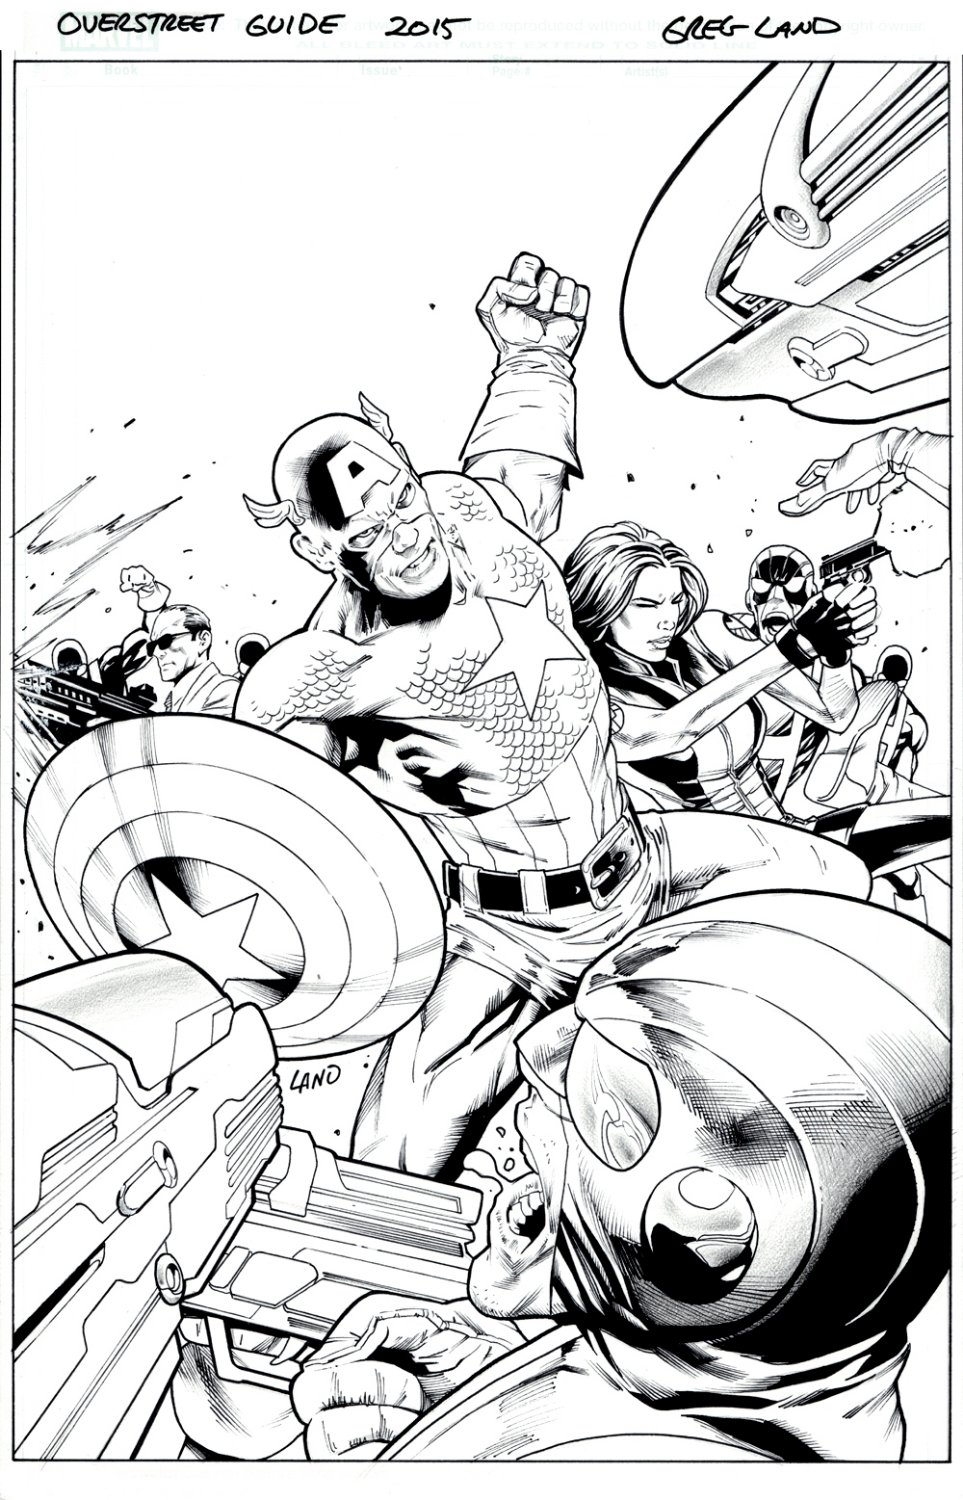 Overstreet Comic Book Price Guide #45 Cover (Awesome Captain America, Black Widow, & Agents of S.H.I.E.L.D. Battling Hydra!) 2015